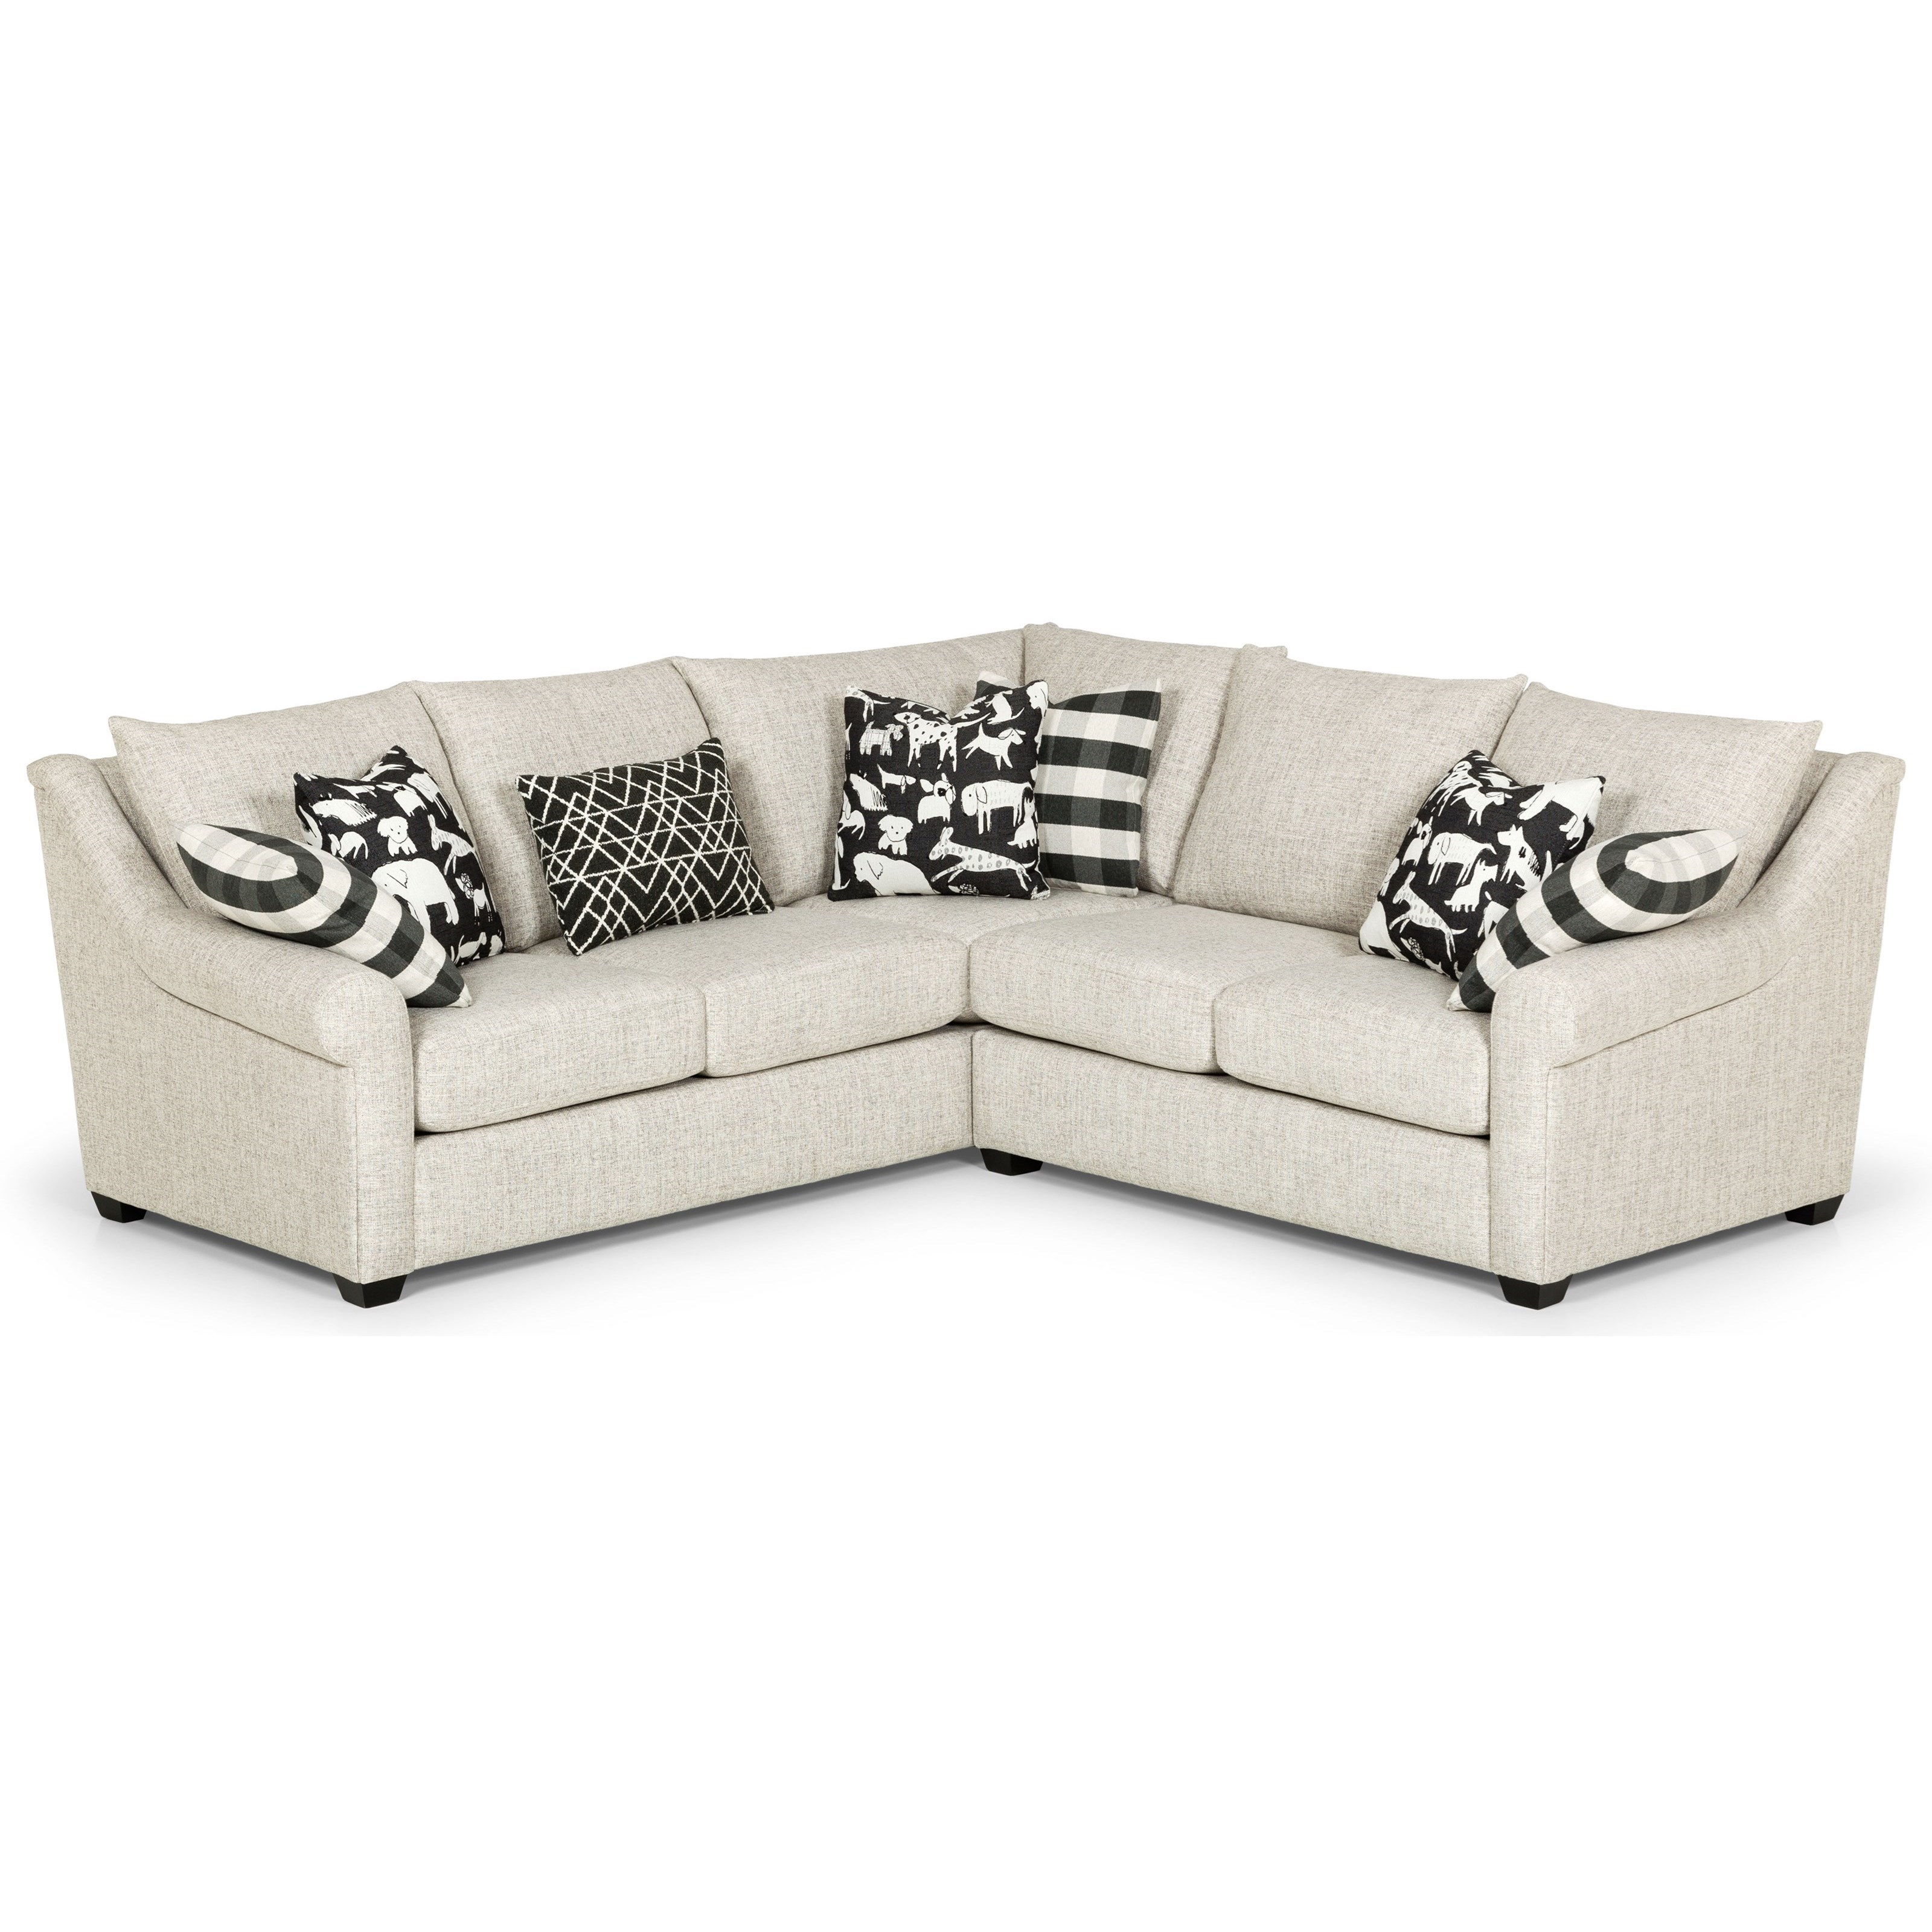 489 L-Shape Sectional by Sunset Home at Sadler's Home Furnishings